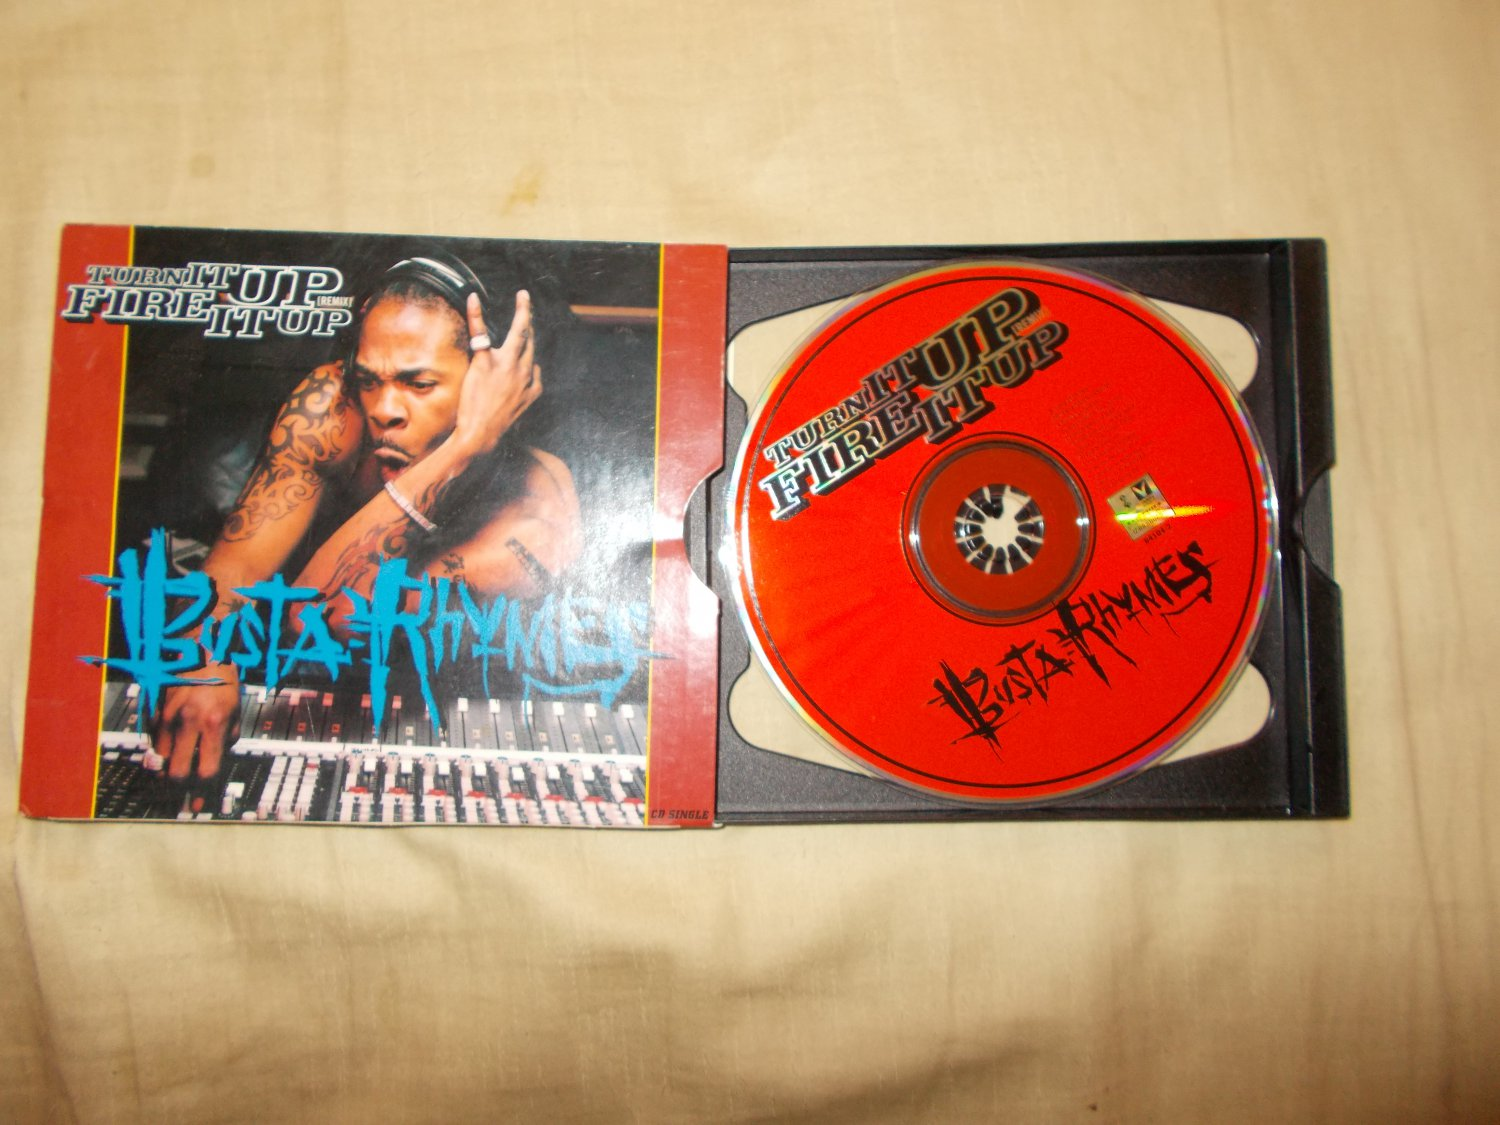 Turn It Up Fire It Up Remix Bustya Rhymes  Music Cd